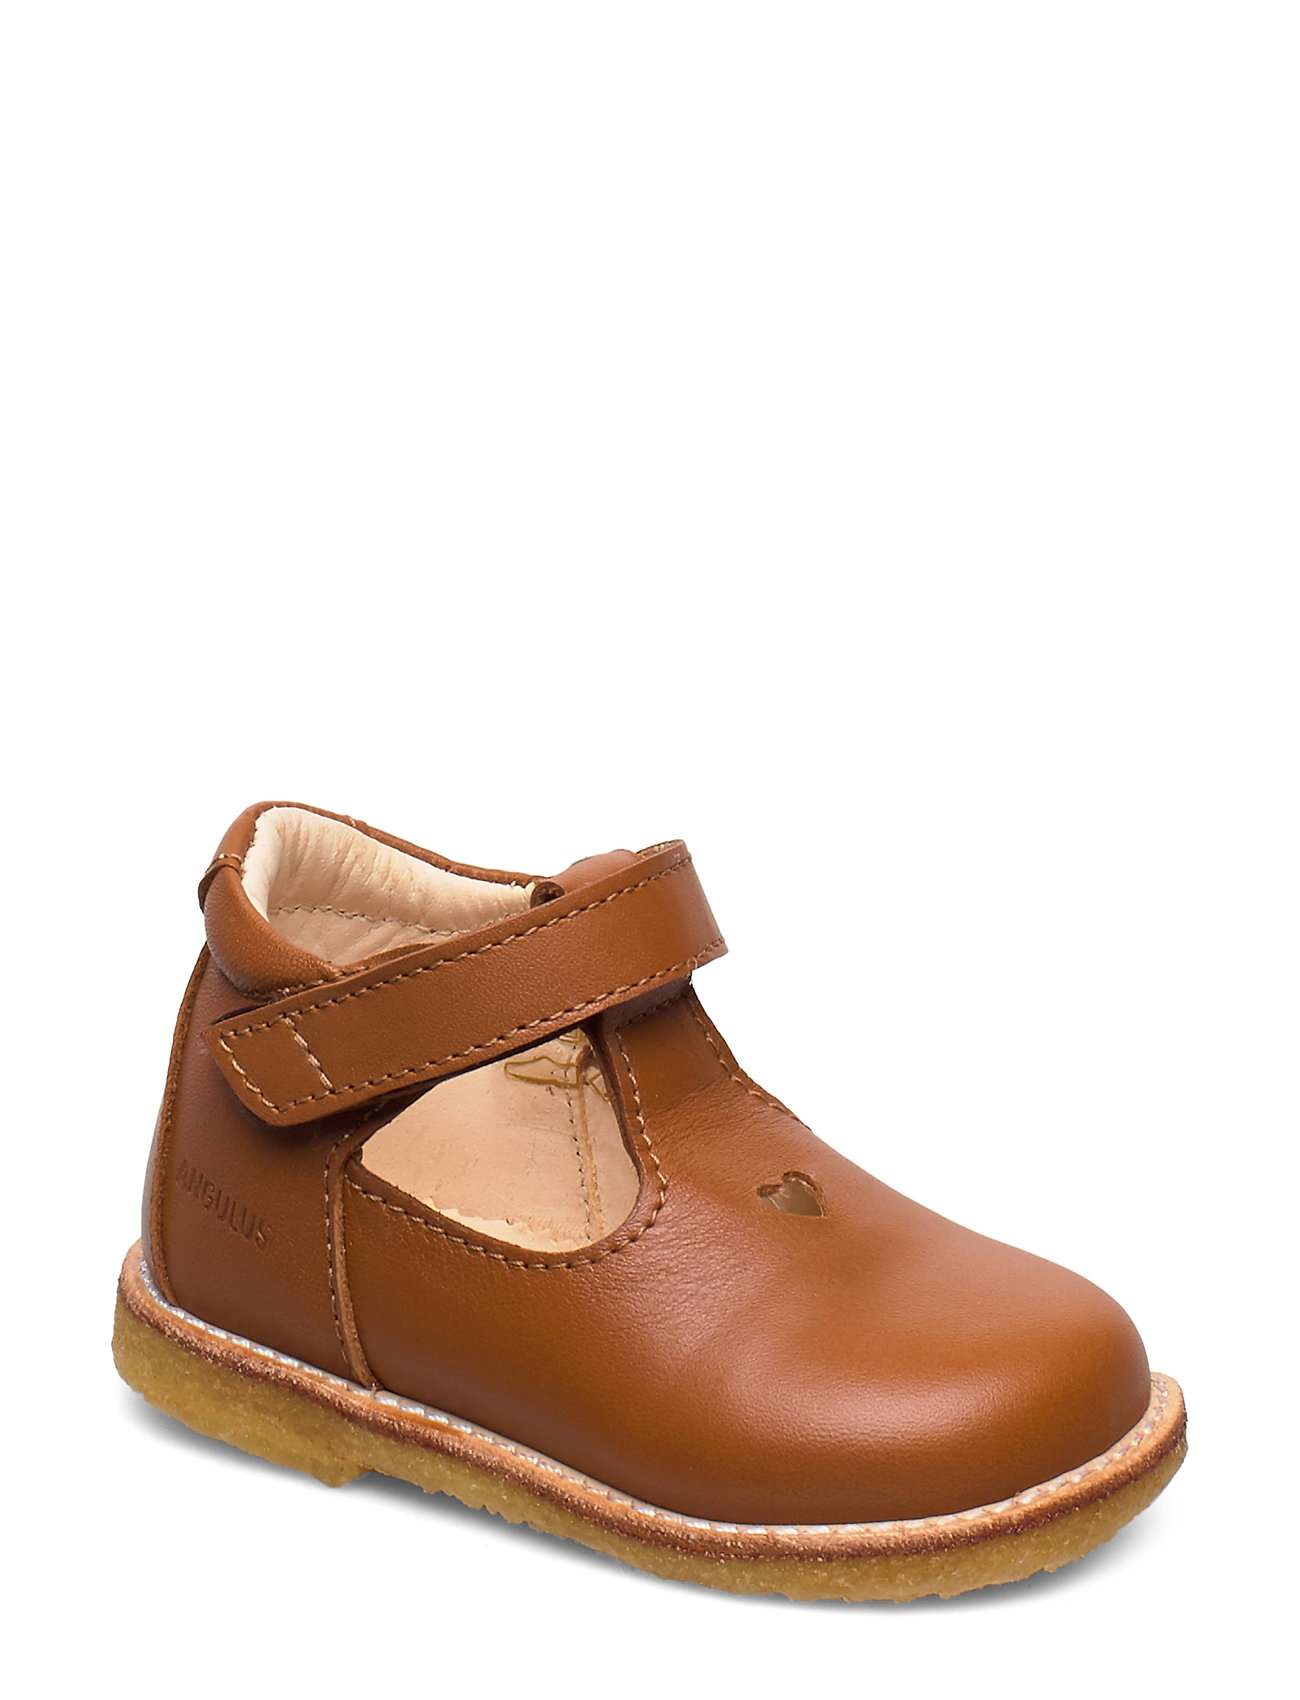 Image of ***T - Bar Shoe*** Sandaler Brun ANGULUS (3272268513)